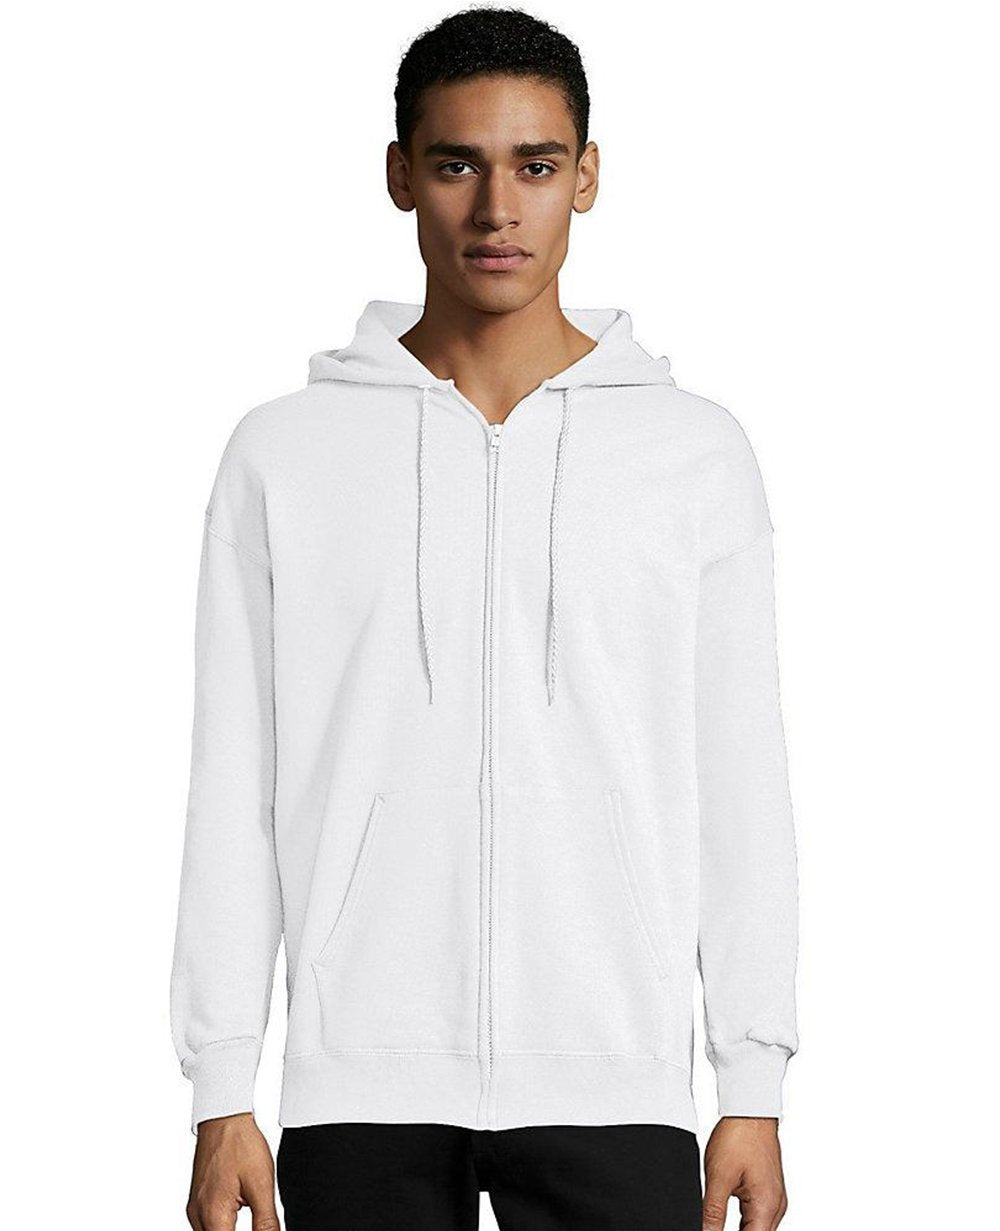 Zip-up Hoodie in White